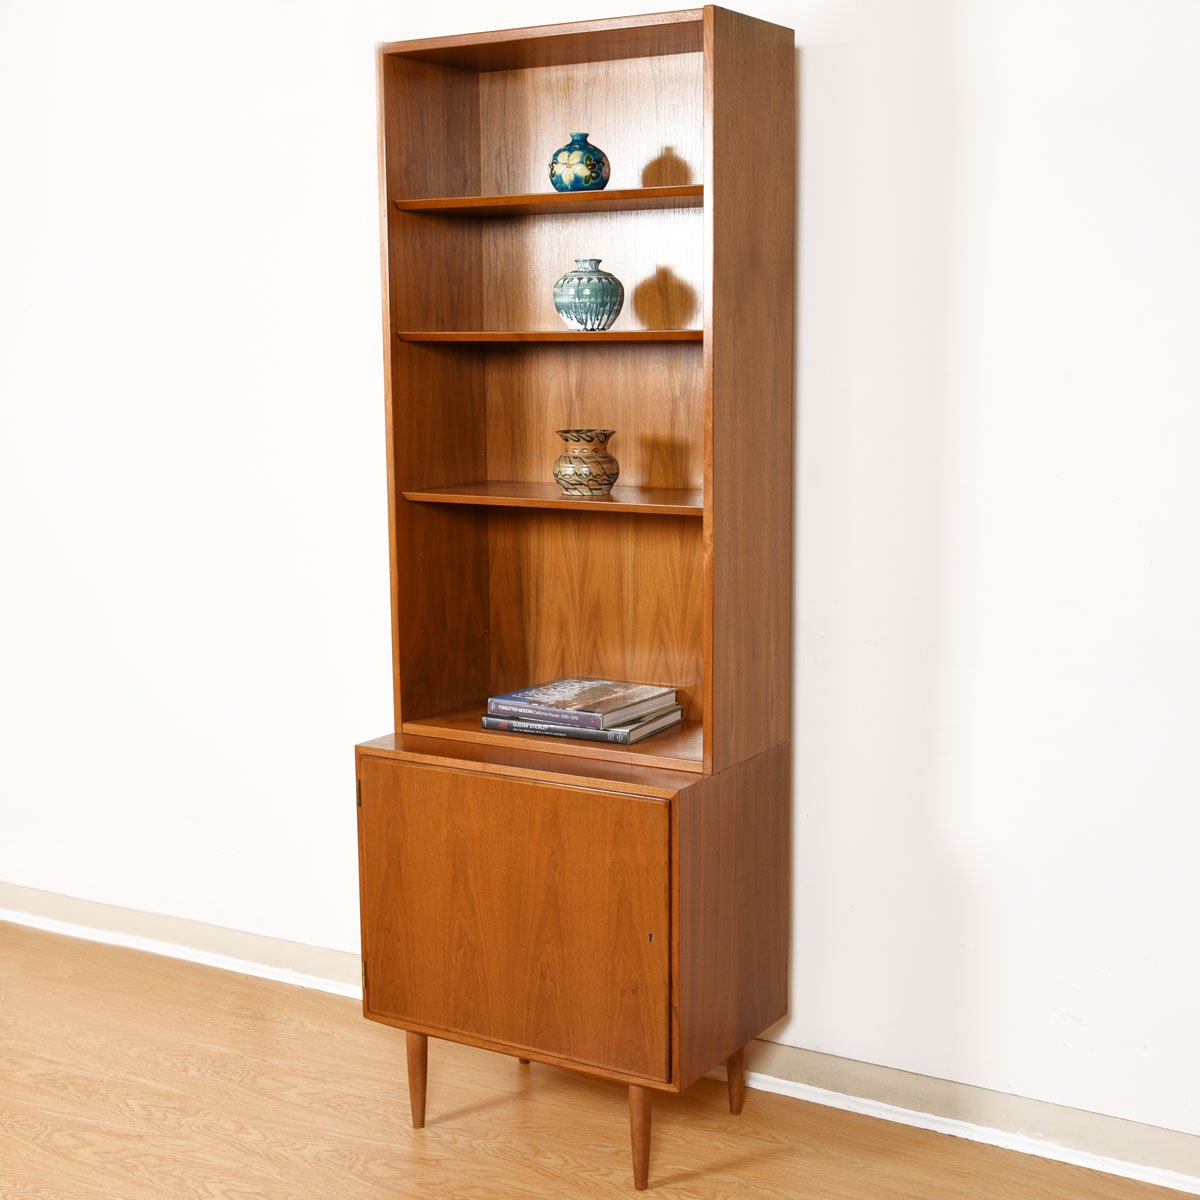 28″ Danish Studio-Sized Locking Cabinet w/ Bookcase Top in Walnut